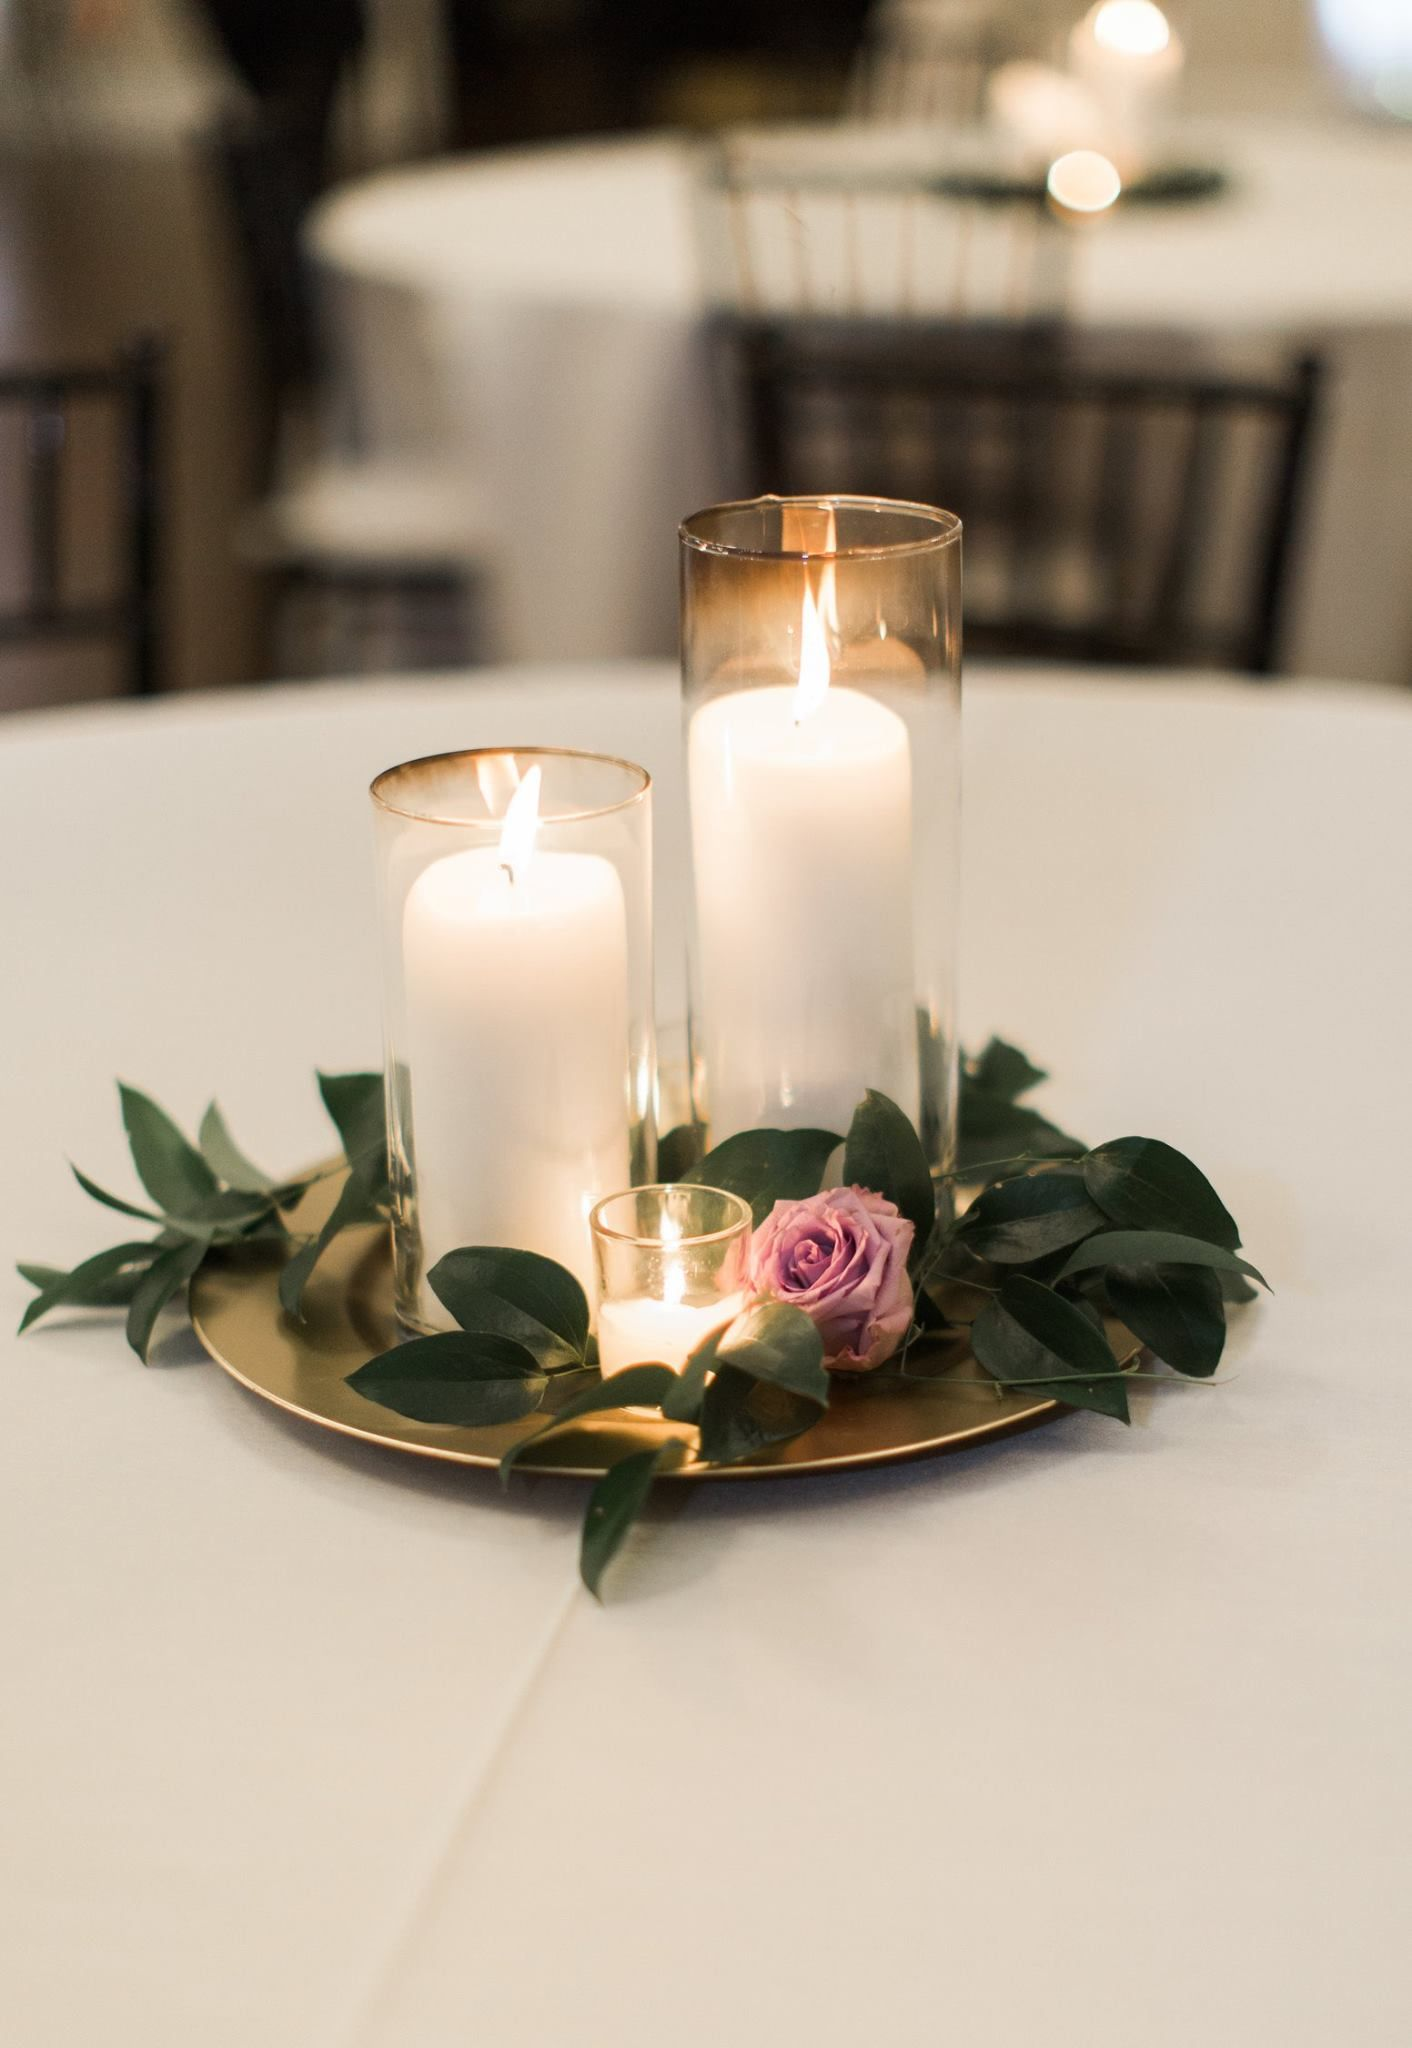 Candle wedding centerpiece purple and greenery centerpiece simple candle wedding centerpiece purple and greenery centerpiece simple wedding centerpiece junglespirit Choice Image